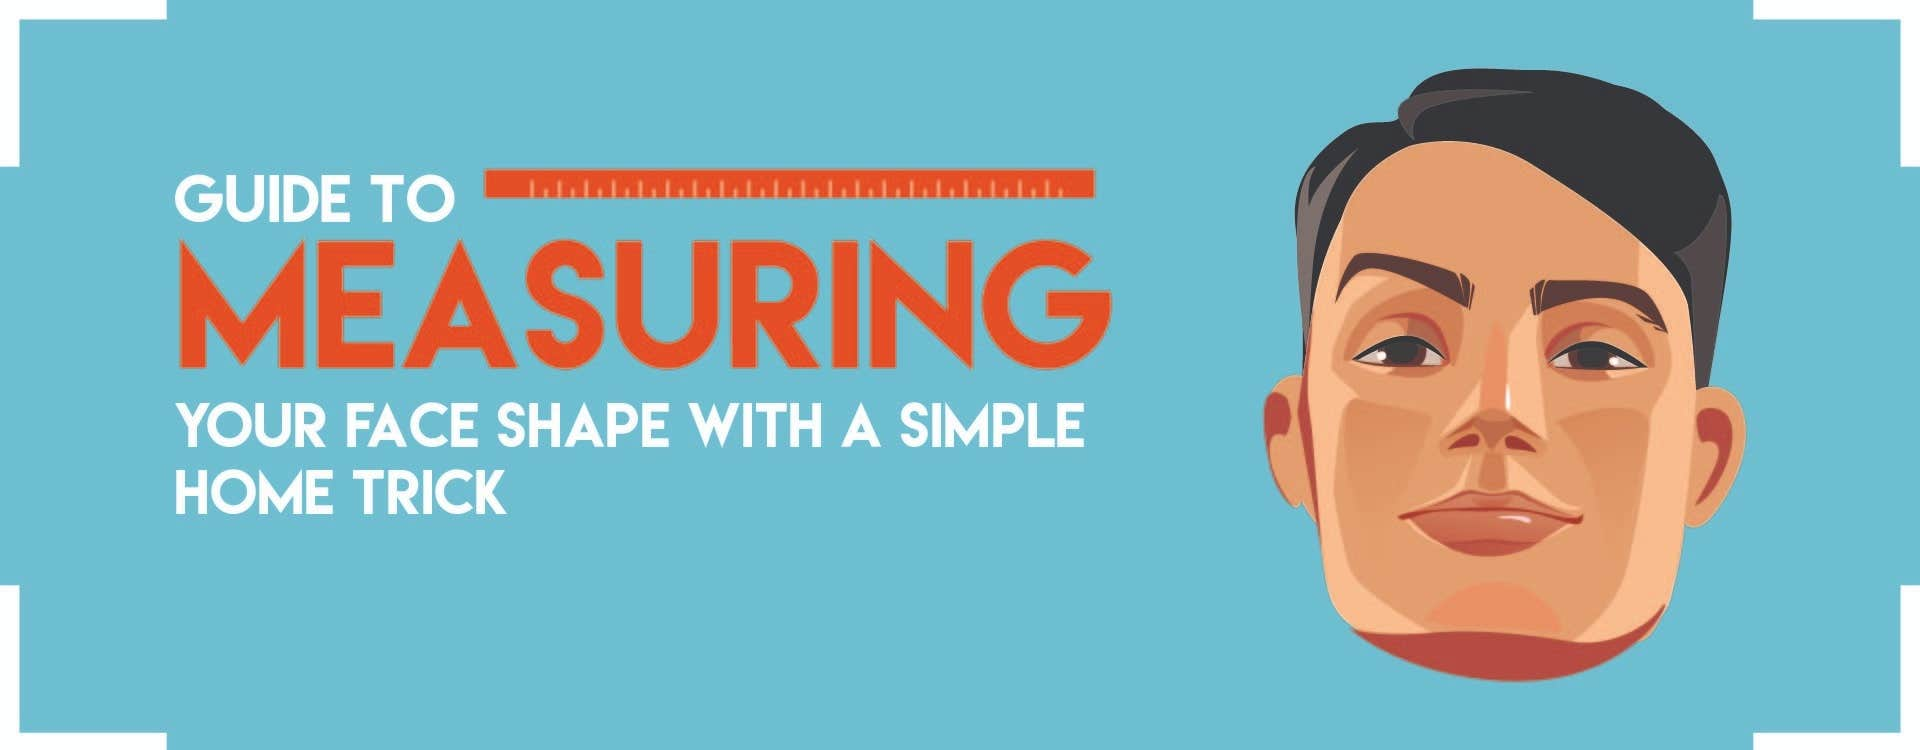 GUIDE TO MEASURING YOUR FACE SHAPE WITH A SIMPLE HOME TRICK